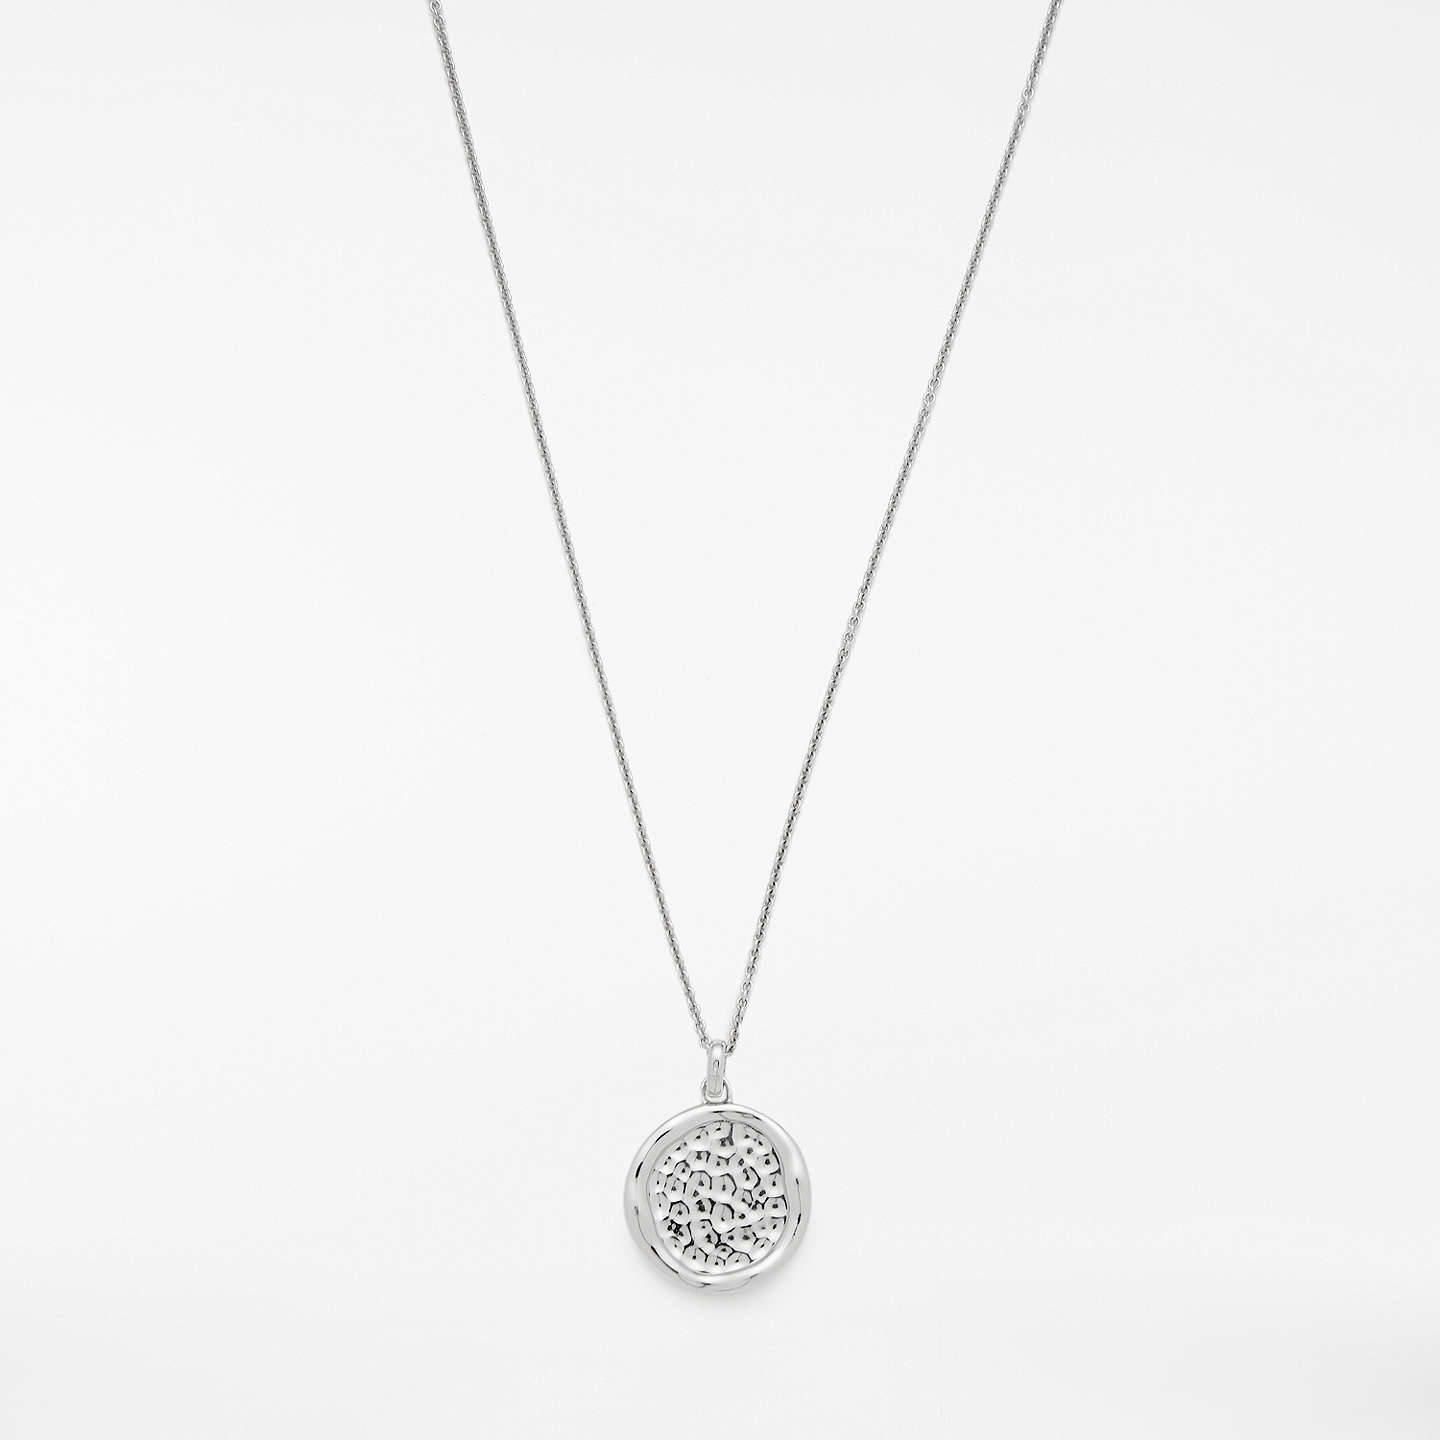 BuyModern Rarity Hammered Disc Pendant Necklace, Silver Online at johnlewis.com